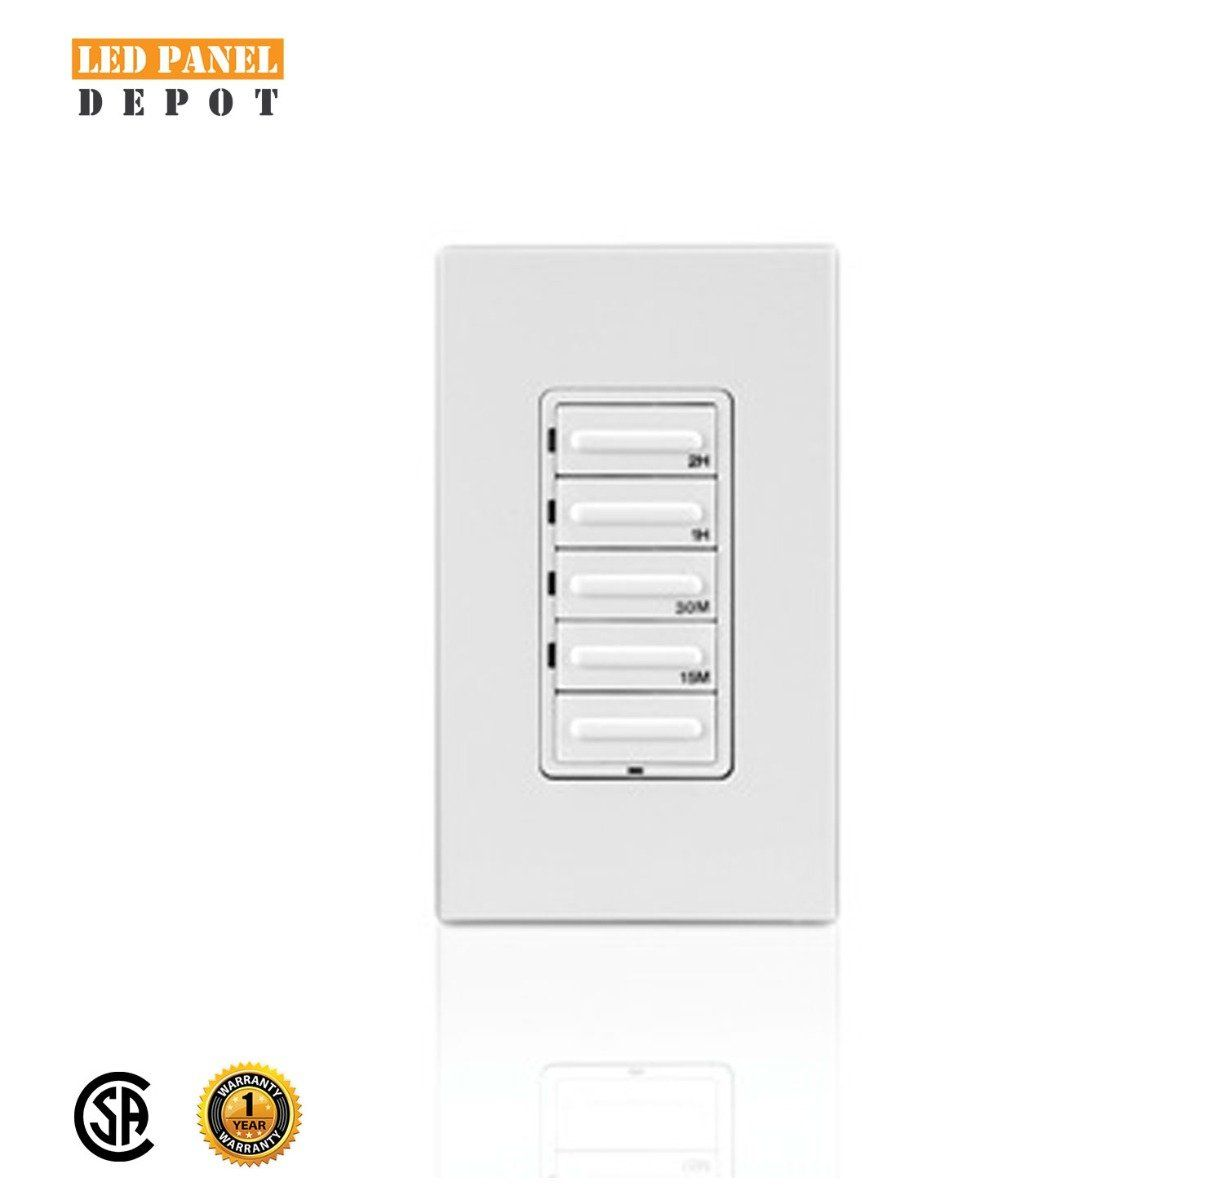 Leviton 155 155 155 155 Minute Countdown Timer Switch, Preset, Decora 155W  Incandescent/155A Resistive inductive 15HP